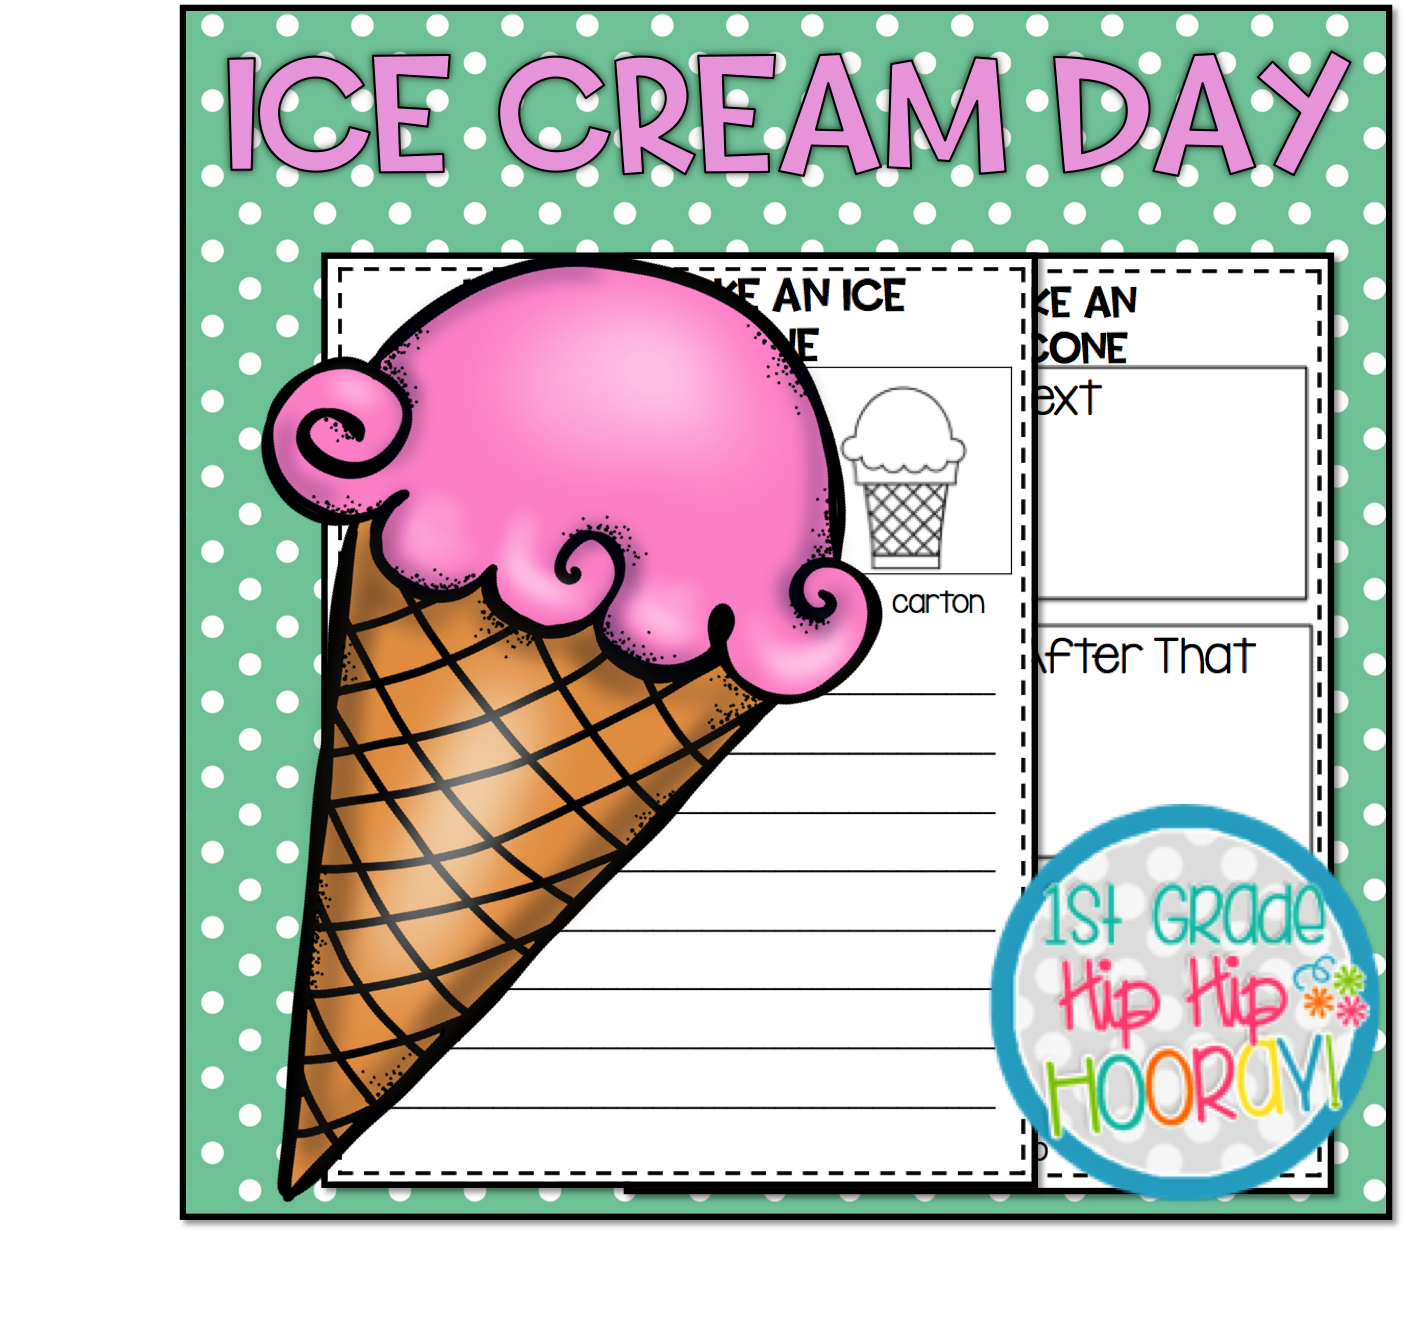 1st Grade Hip Hip Hooray Ice Cream Day Rfect For End